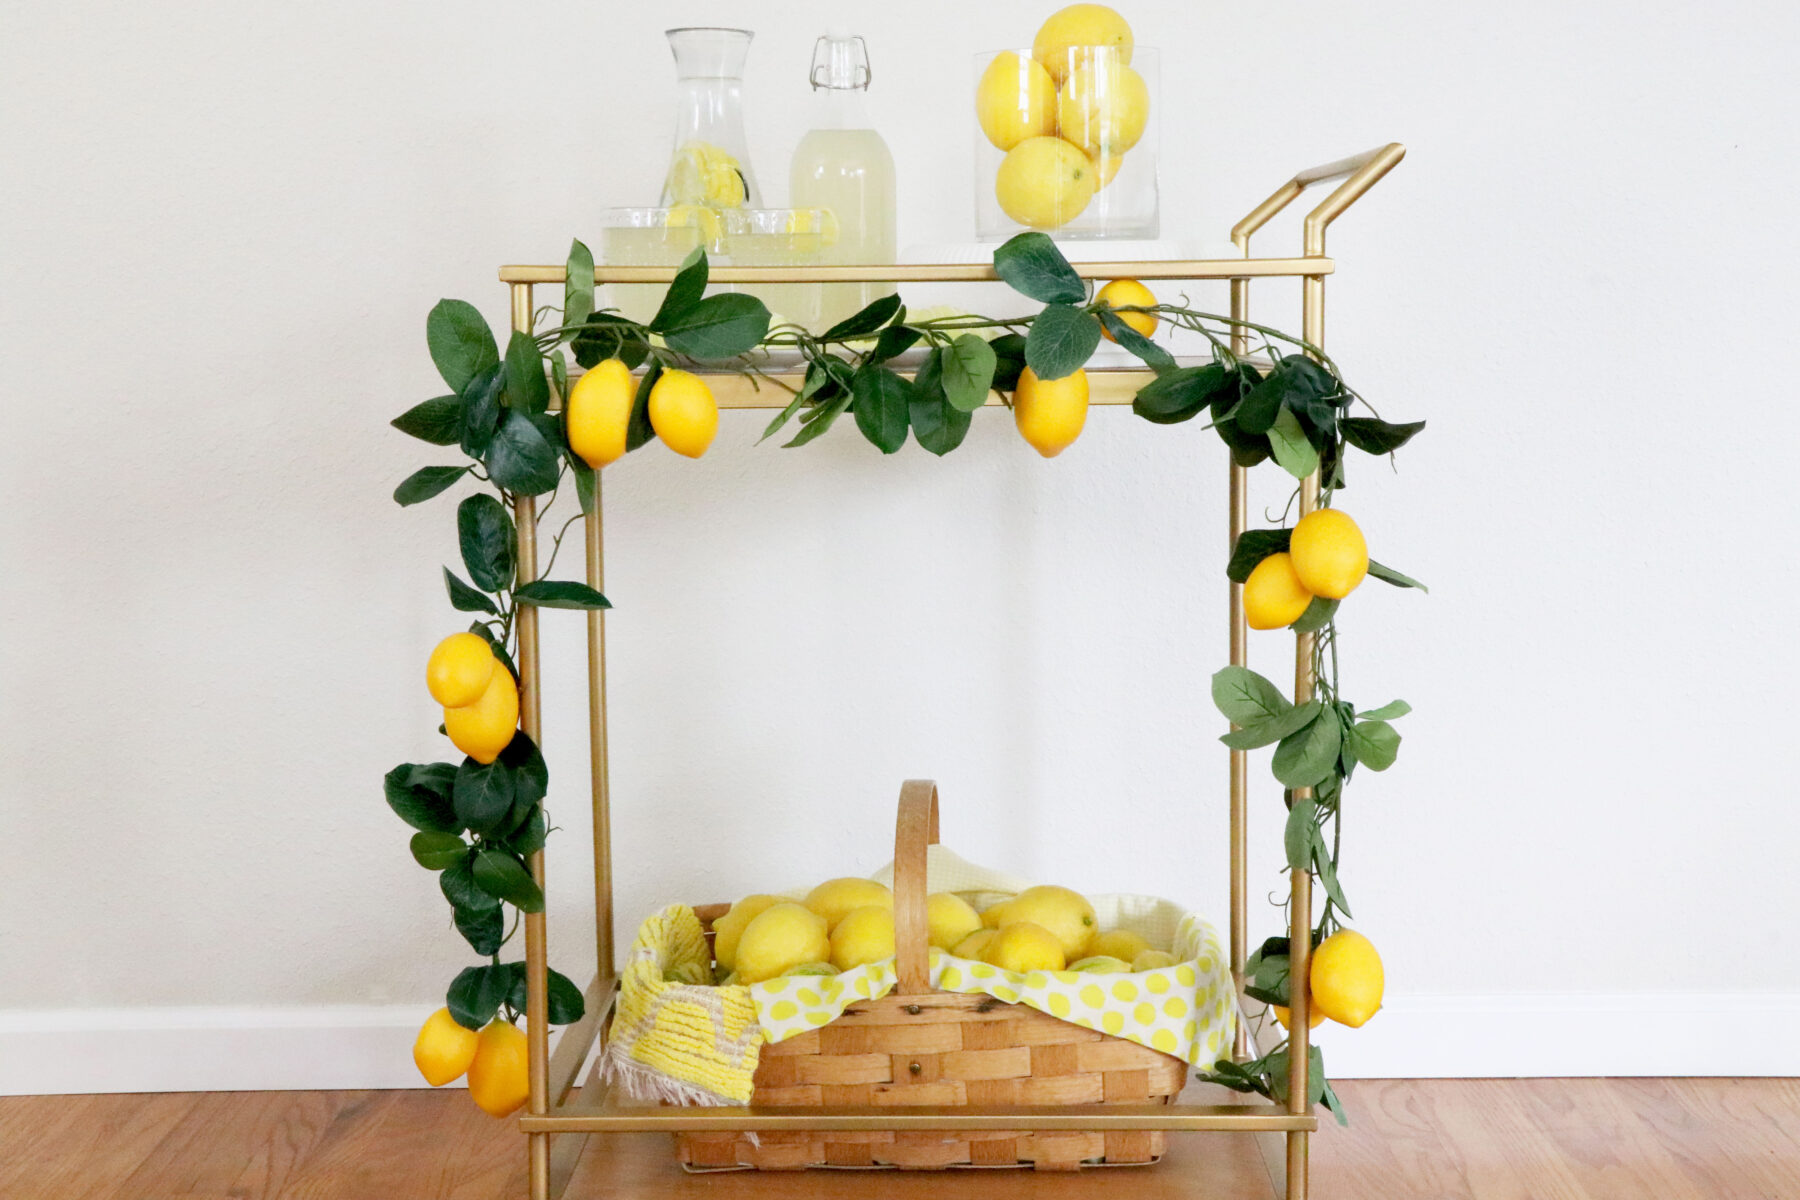 Drink cart in the middle of photo lined with a lemon garland, basket of lemons on the bottom shelf, and lemonade, cookies and a vase of lemons on the top.